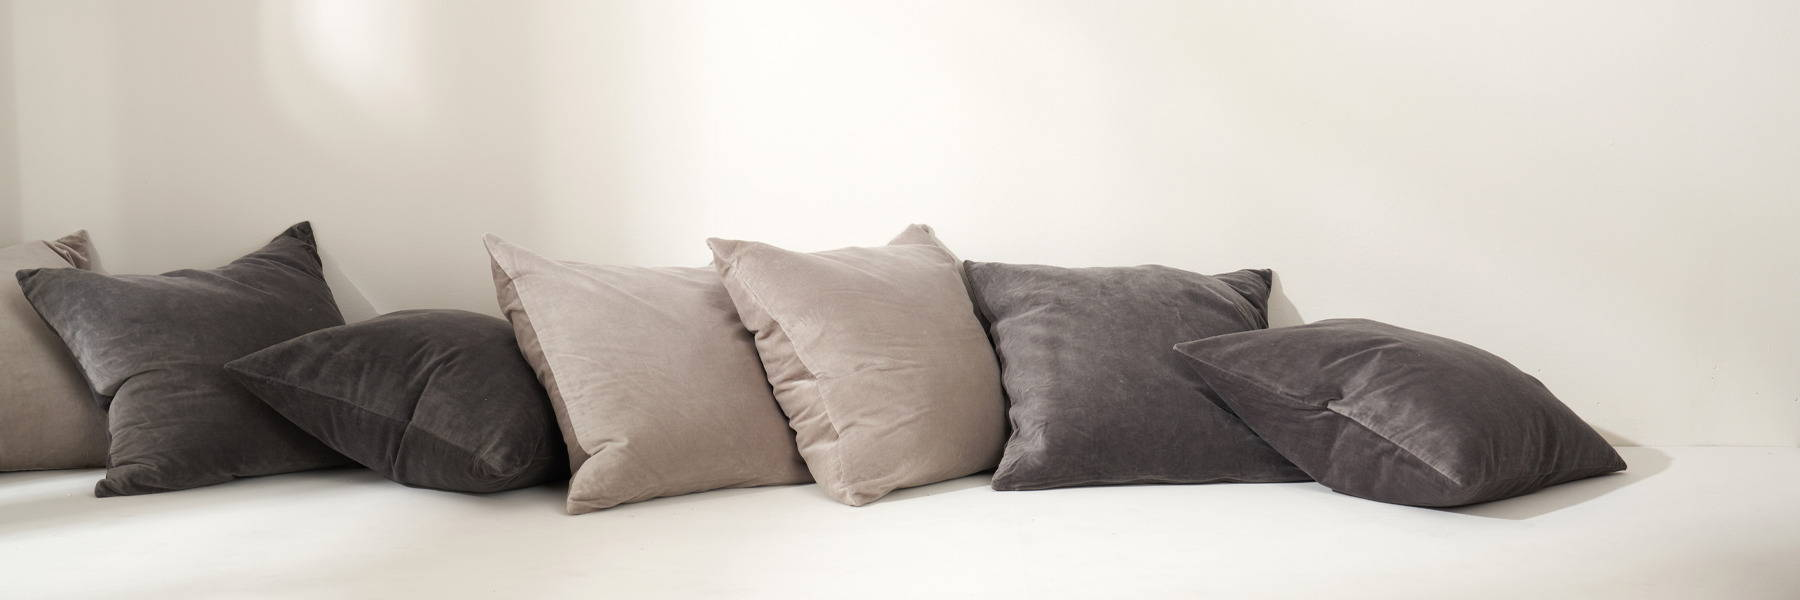 Truly Lifestyle Living Banner With Grey And Charcoal Cushions